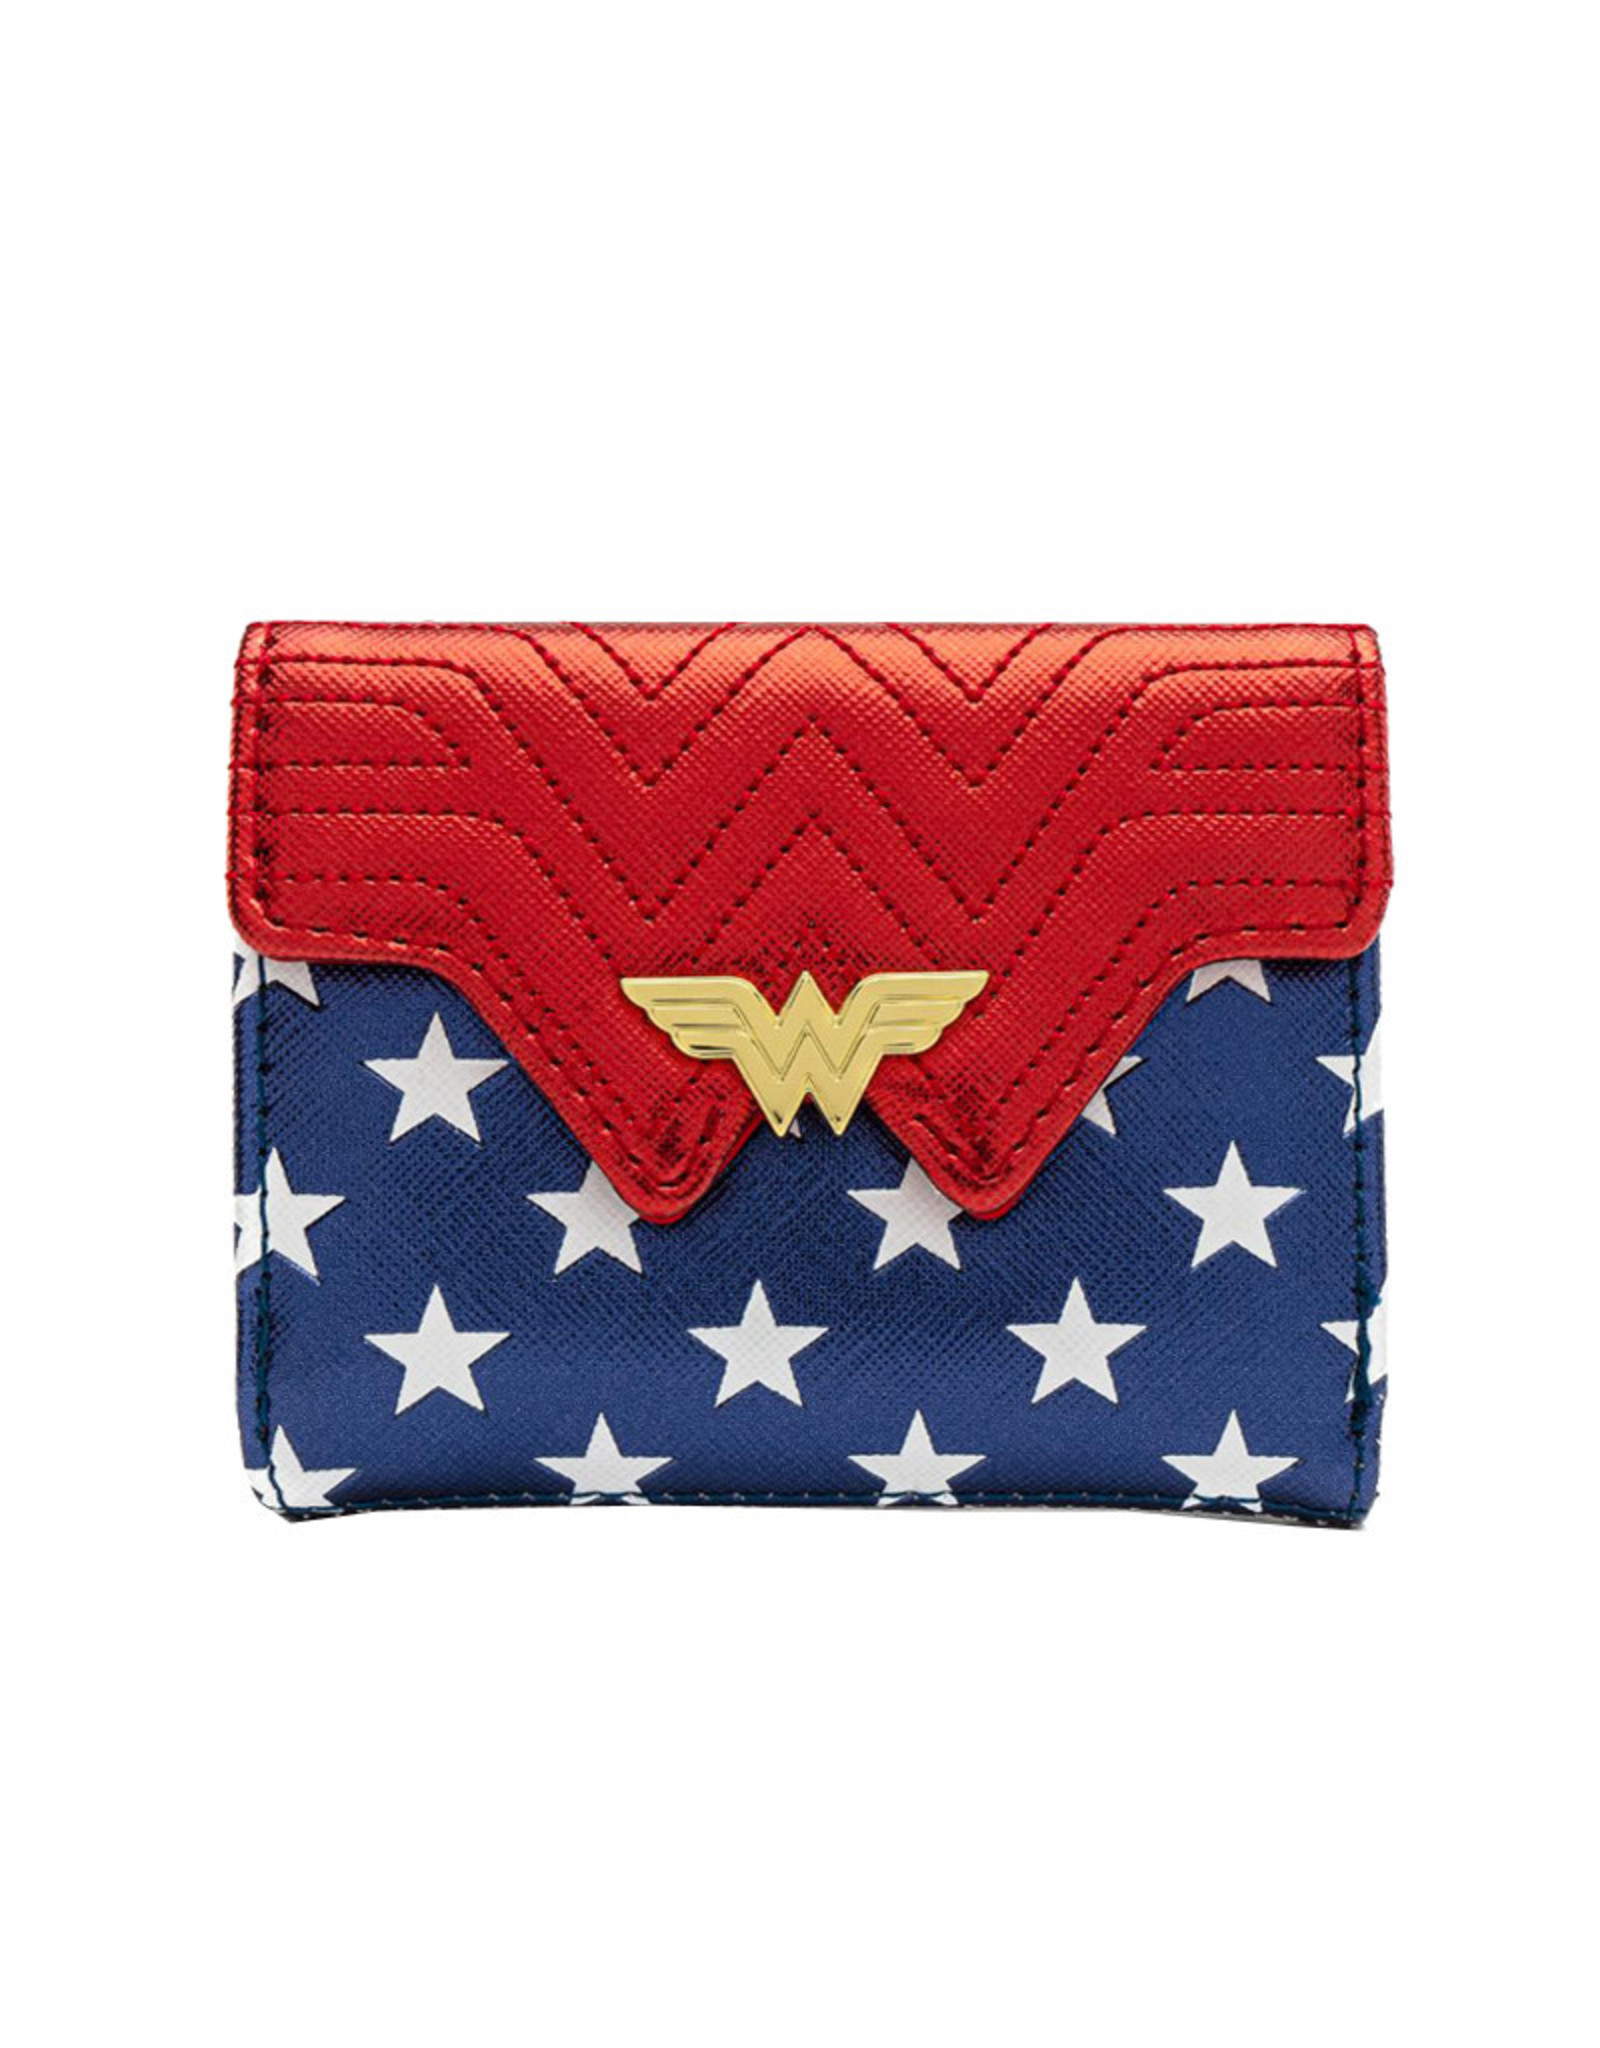 Dc comics Dc Comics (  Loungefly Wallet ) Wonder Woman